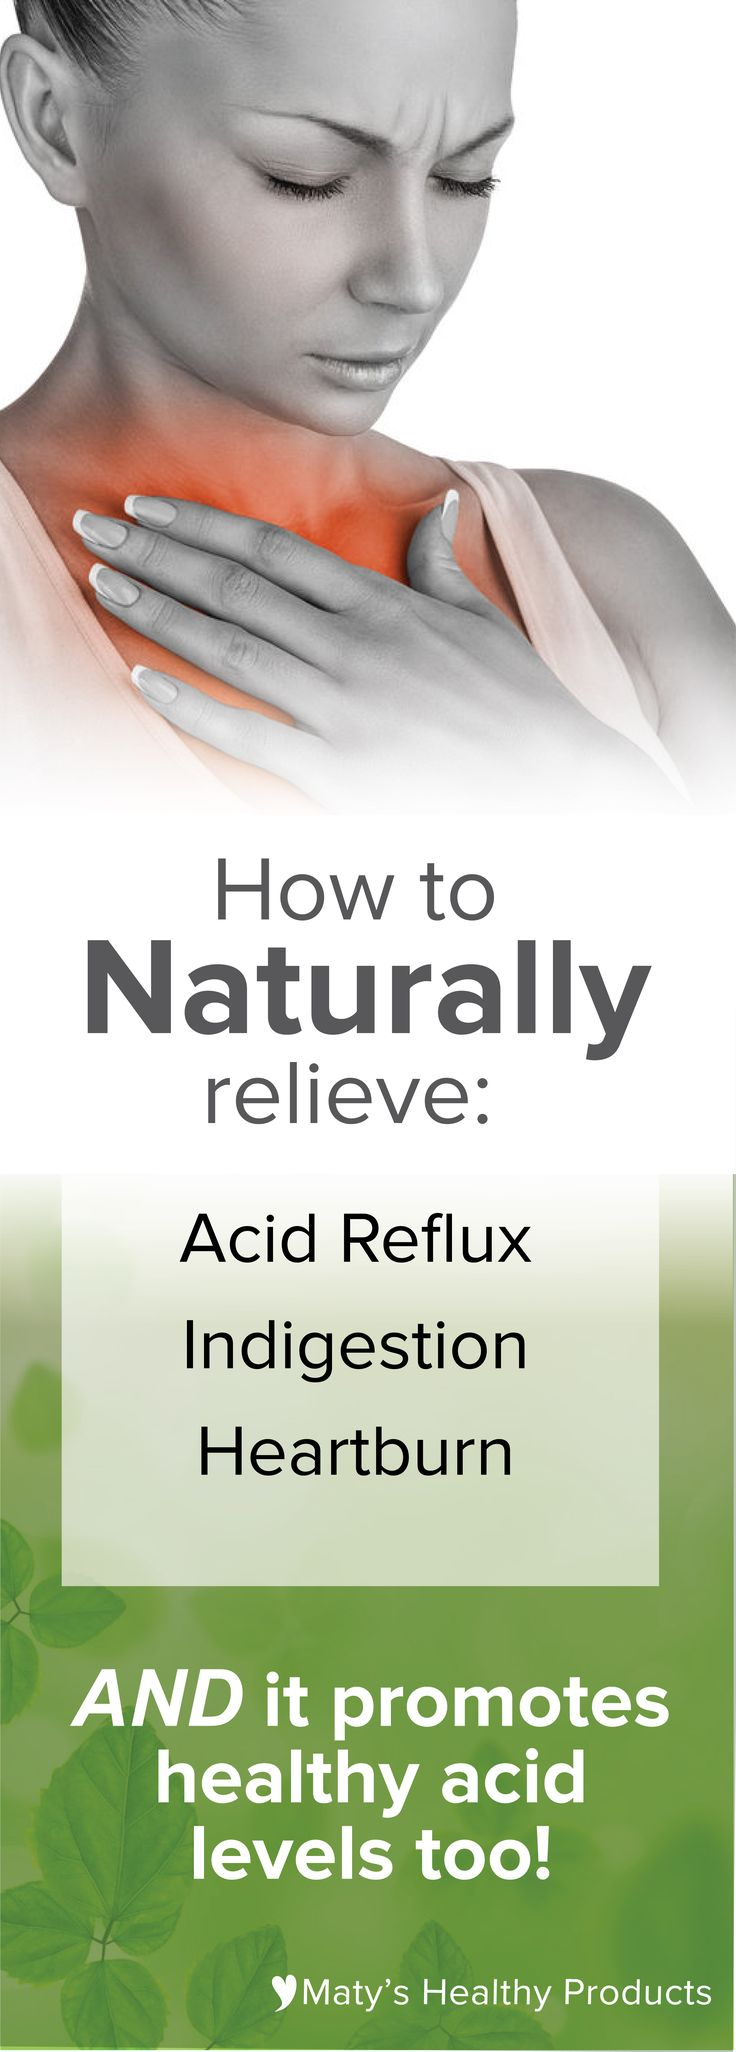 Ever wondered how to naturally relieve heartburn or indigestion? This natural remedy for heartburn and acid indigestion uses whole-food ingredients to safely get rid of your heartburn, reflux, indigestion and GERD.